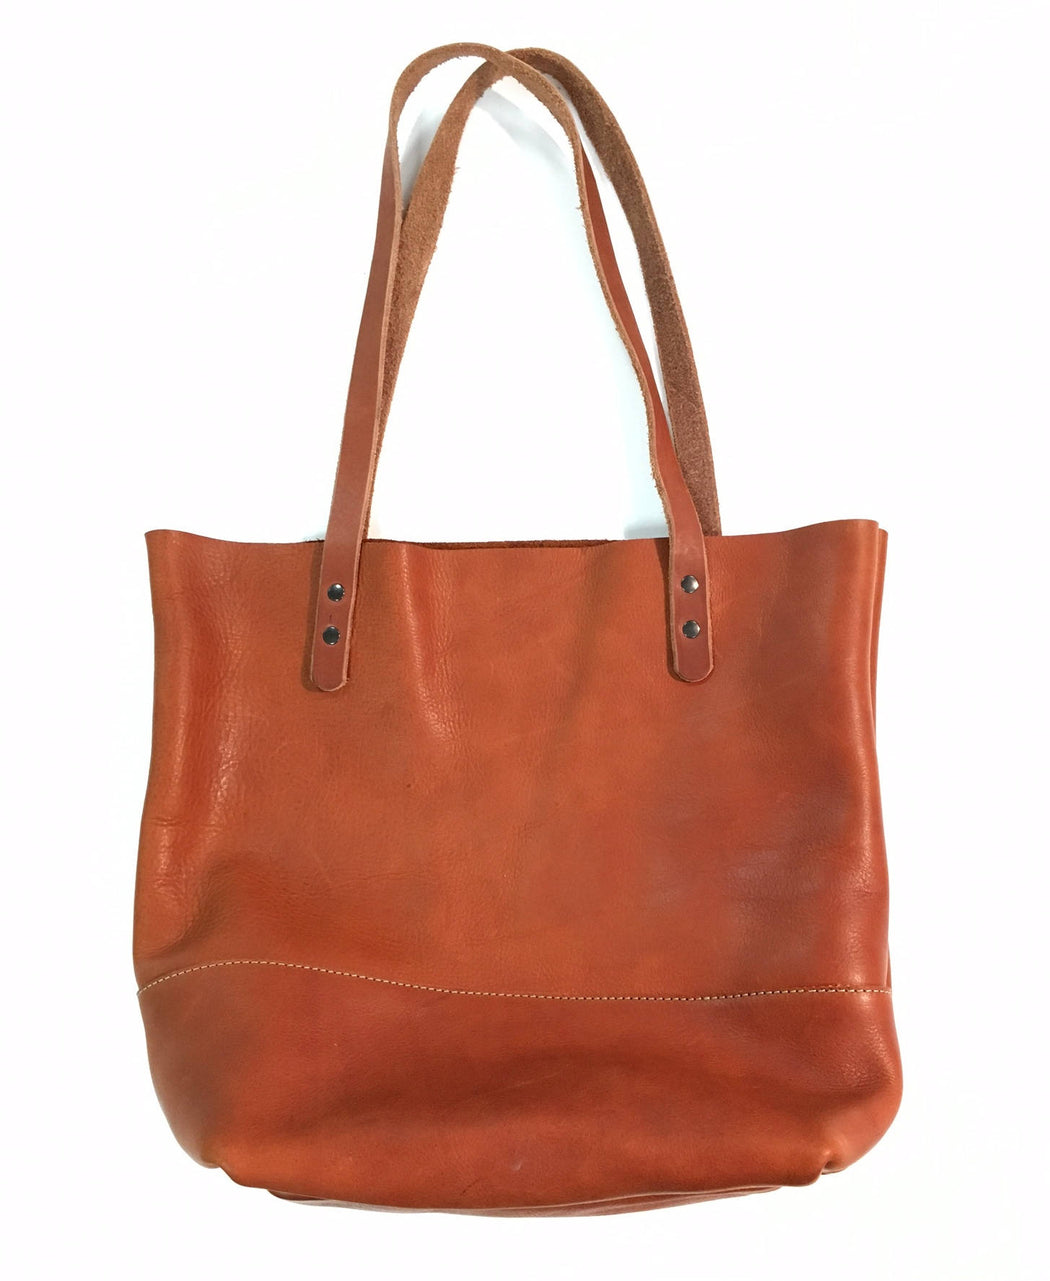 LARGE TOTE Saddle Brown • Leather Everyday Bag